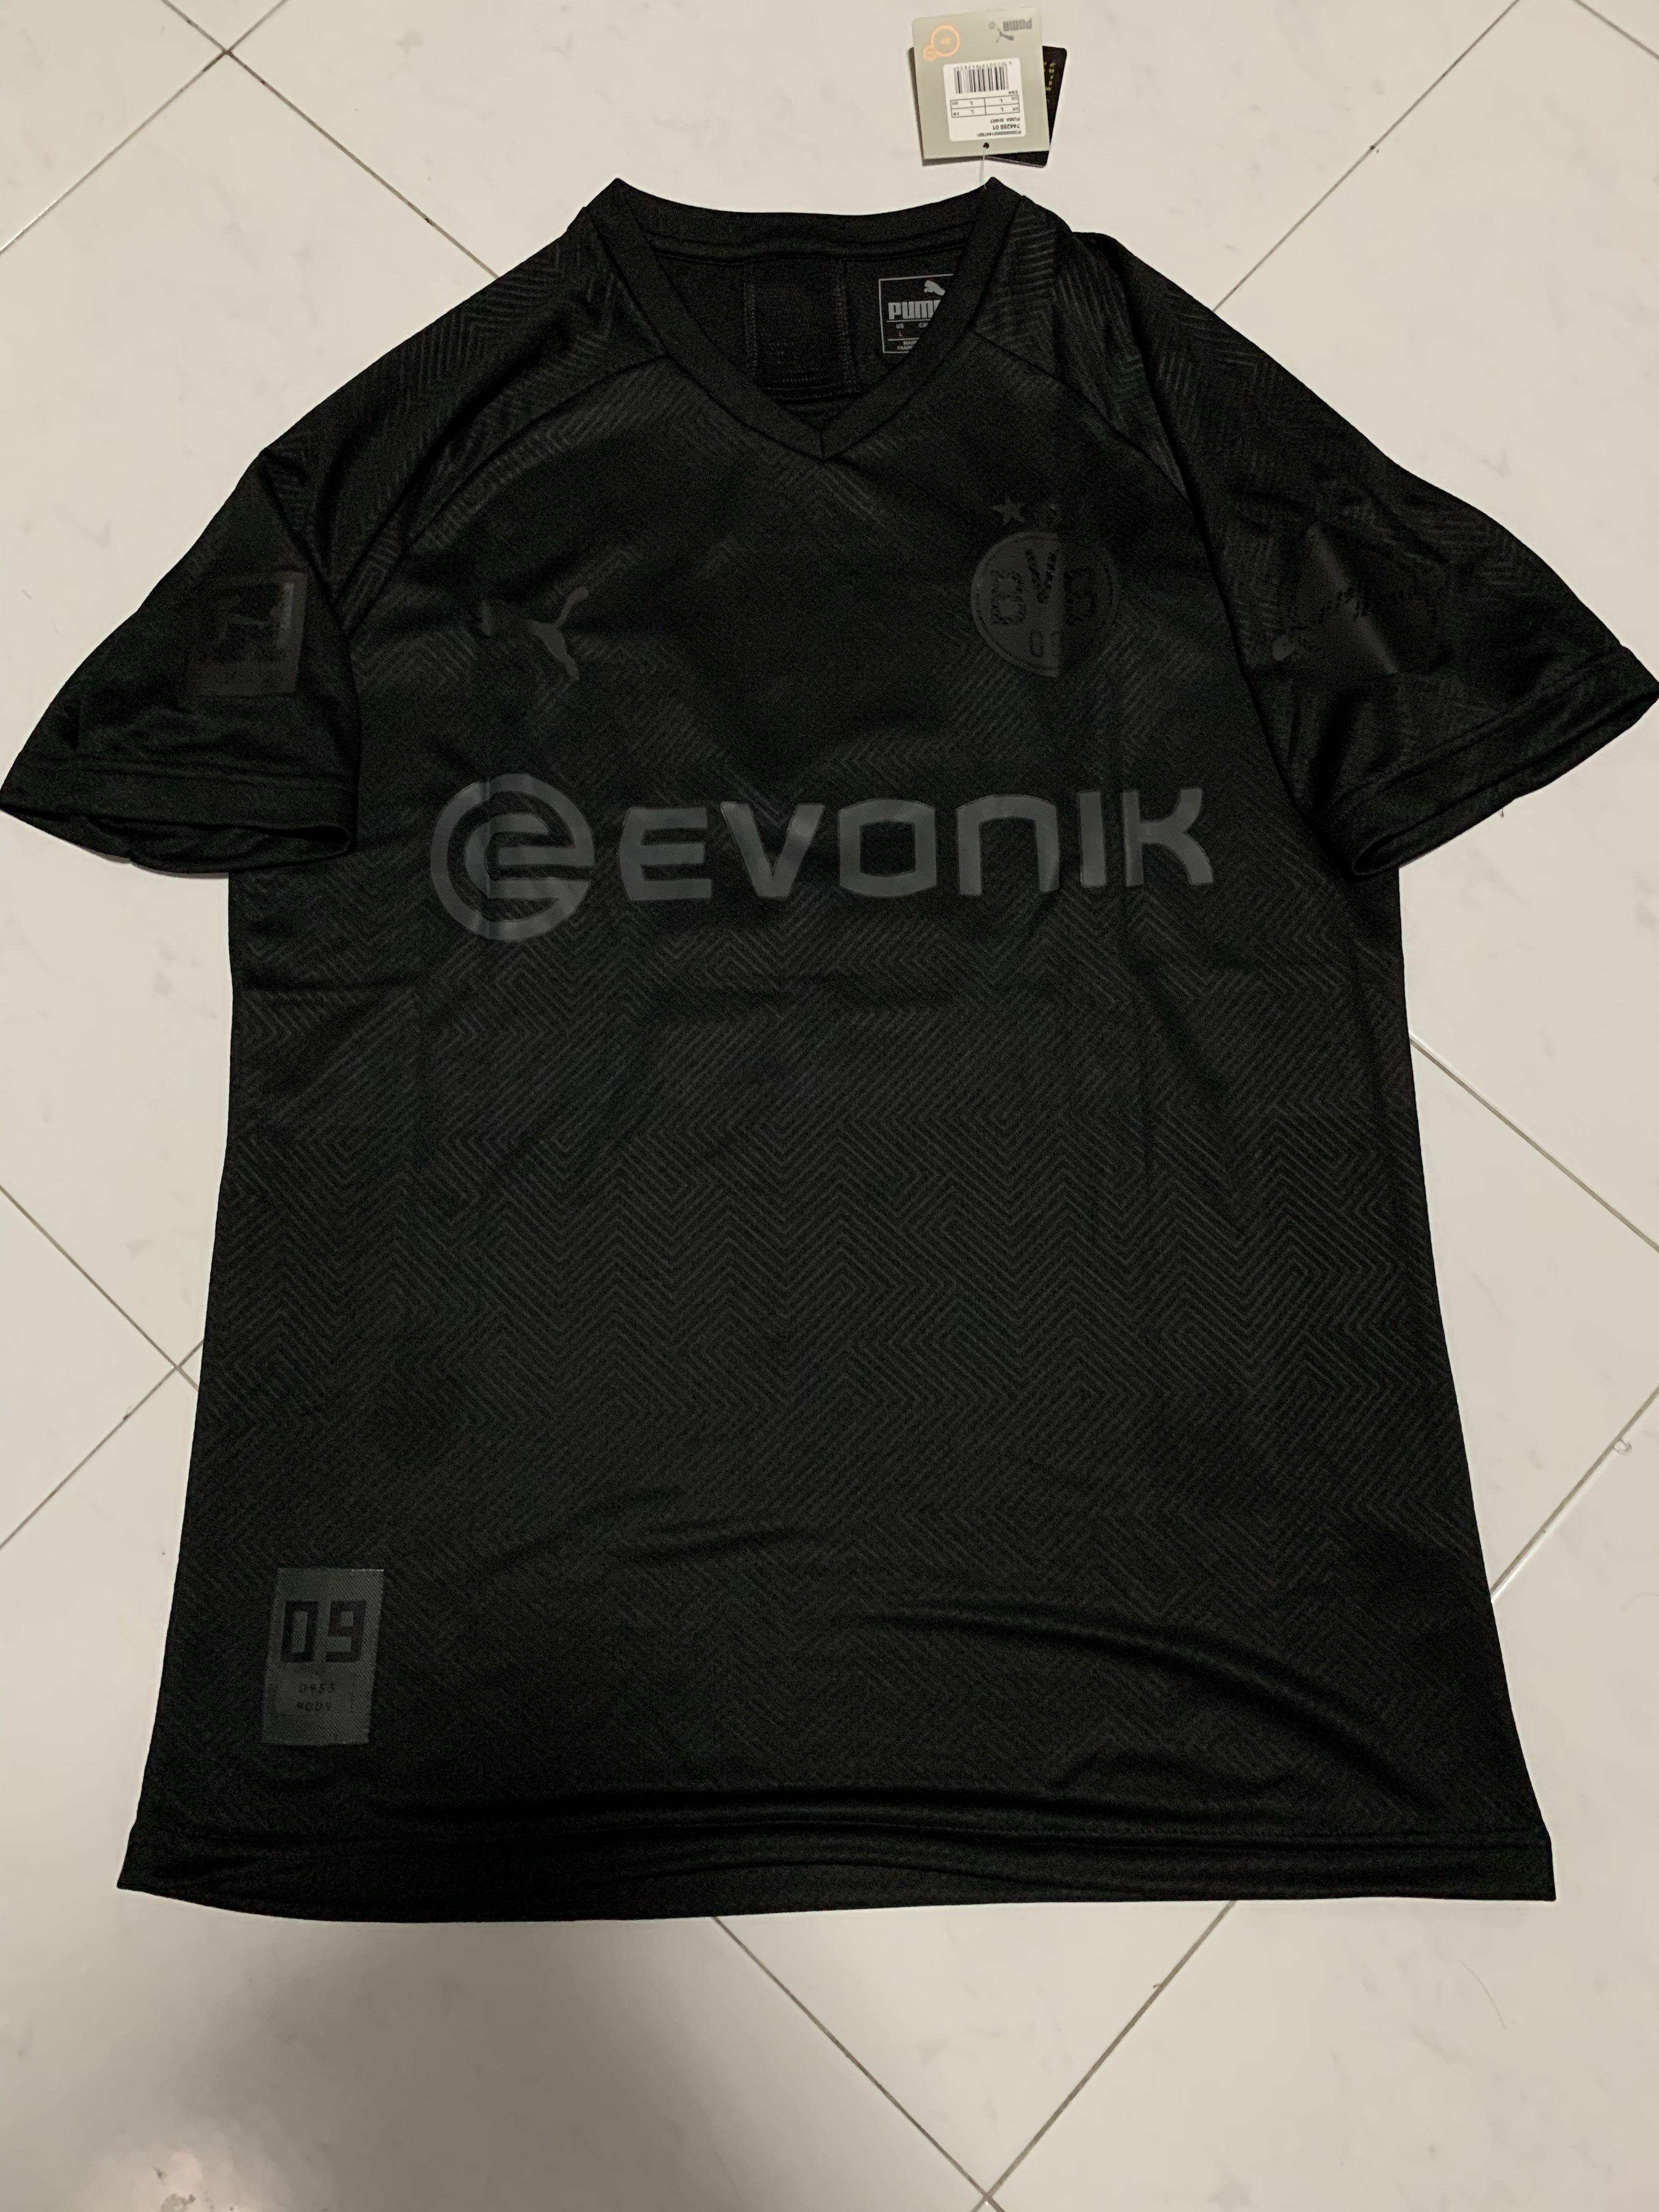 Bnwt Dortmund All Black Jersey Men S Fashion Clothes Tops On Carousell